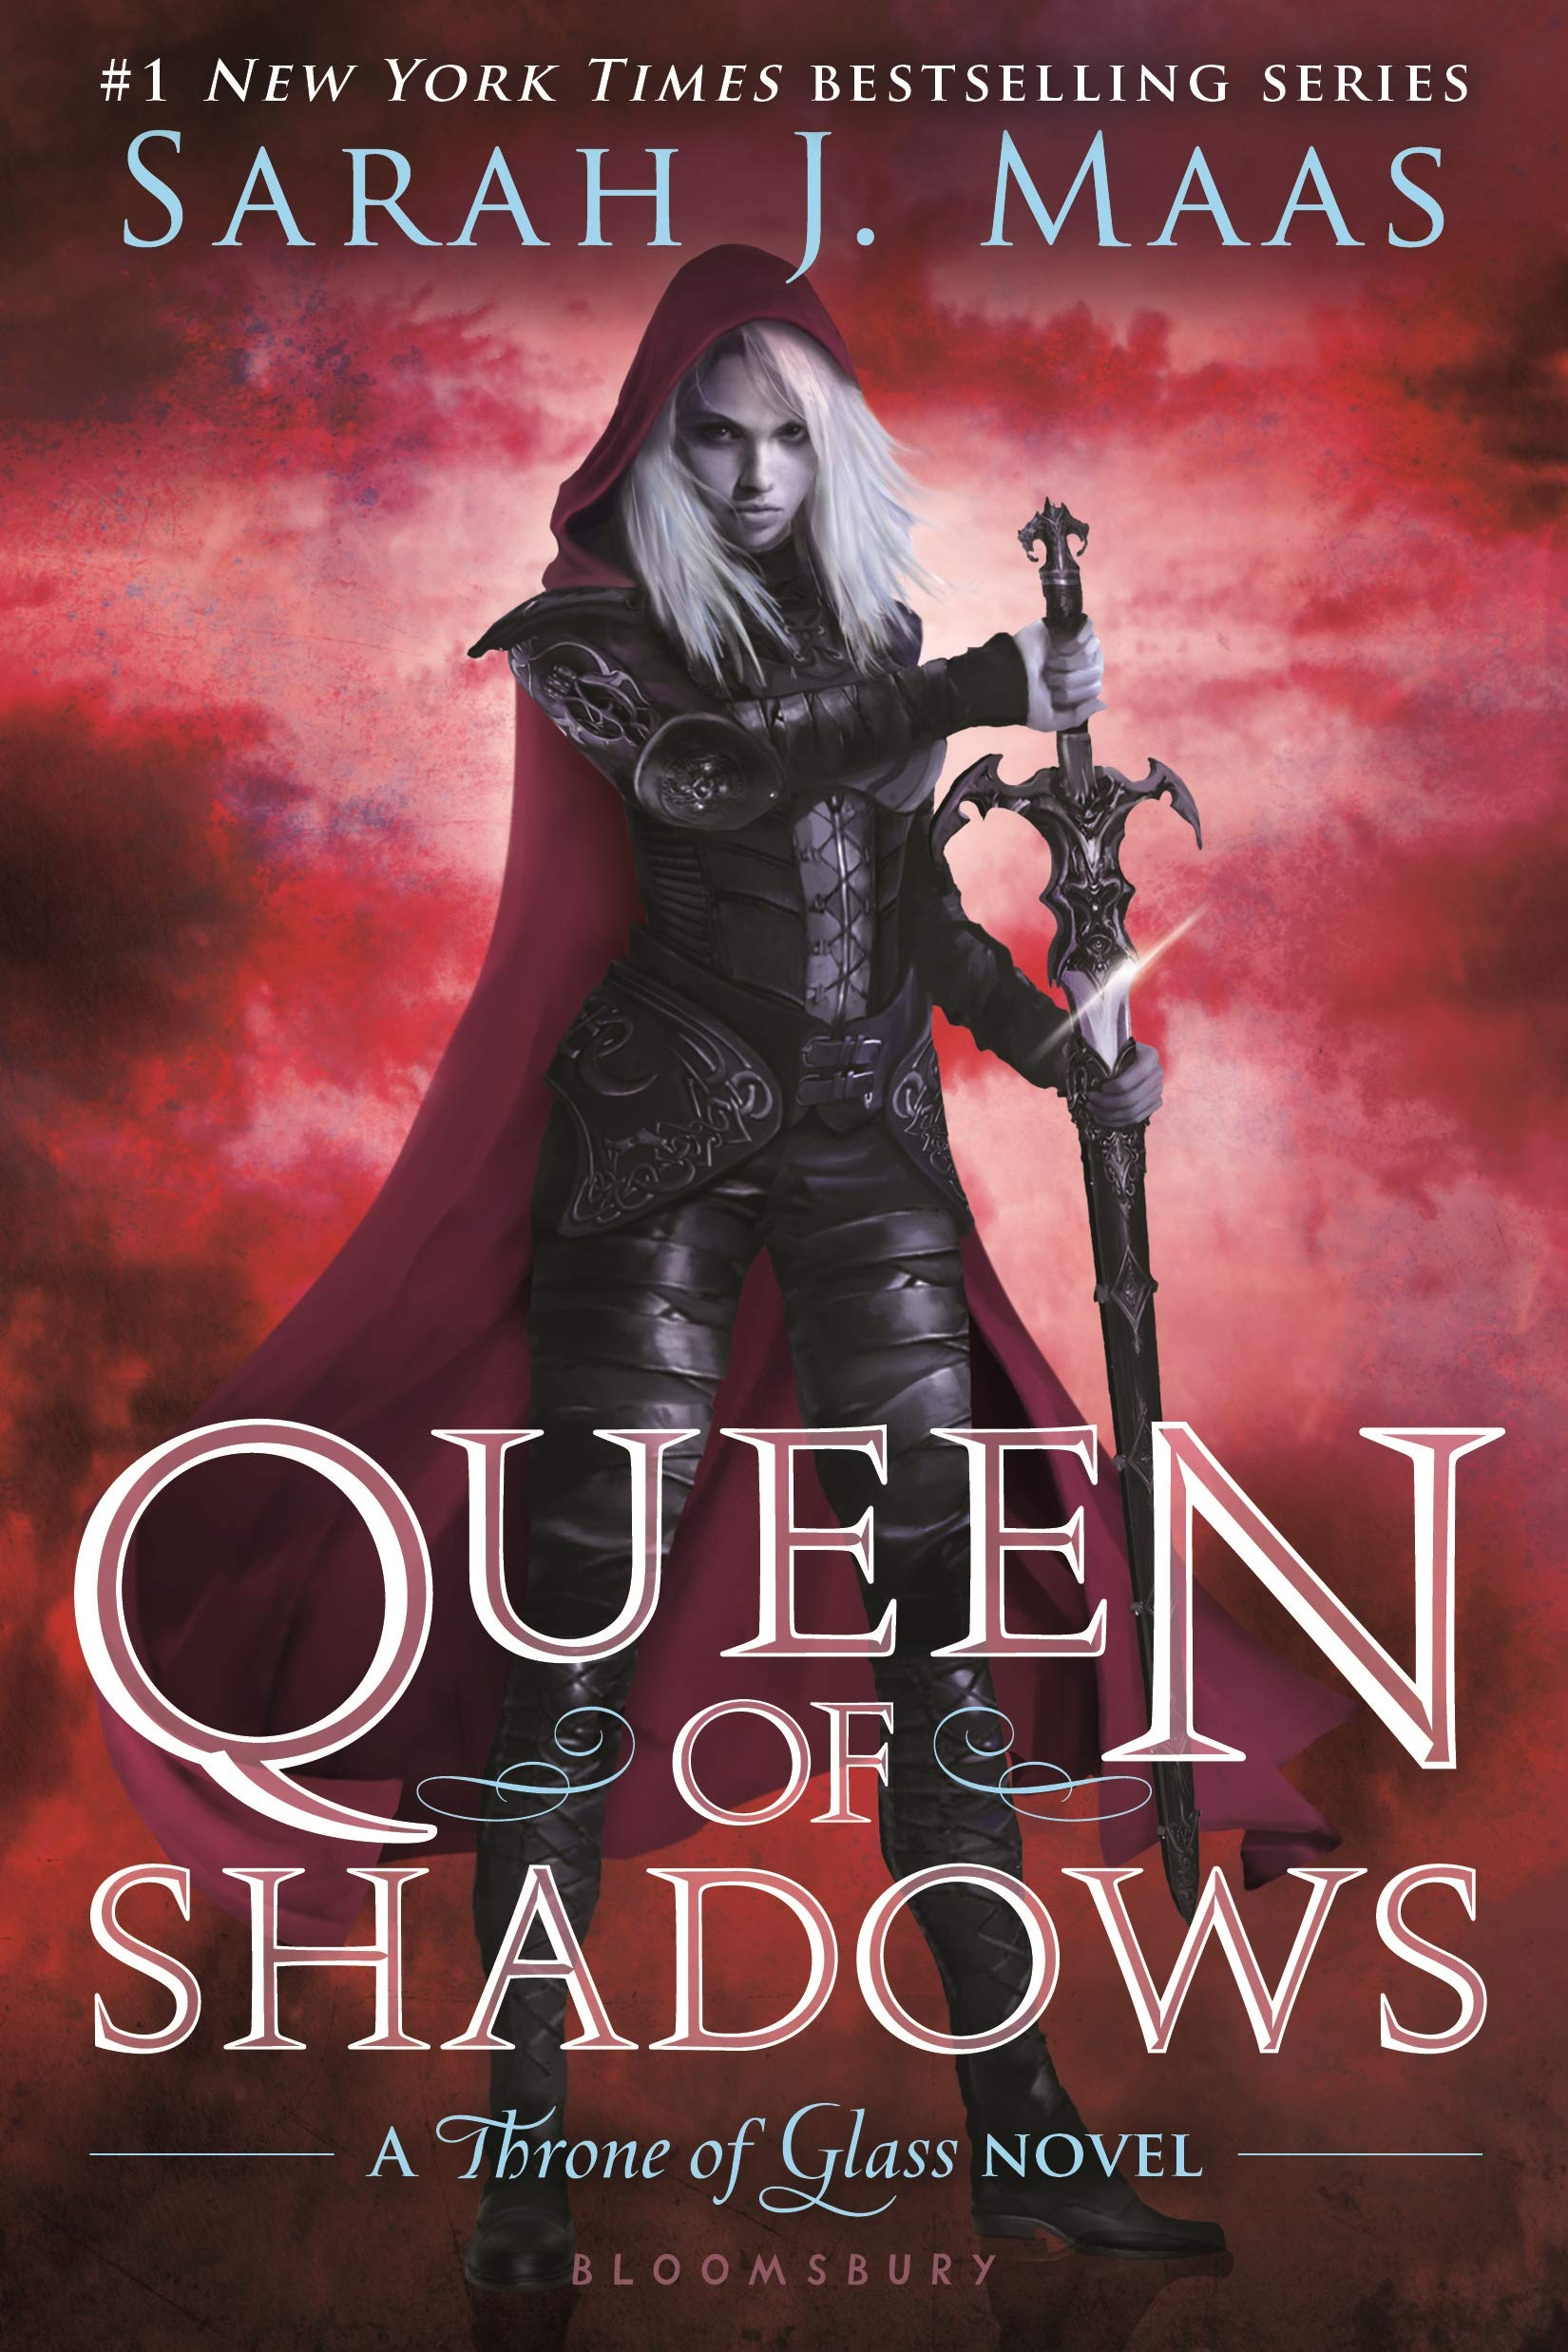 Amazon.com: Queen of Shadows (Throne of Glass) (9781619636064 ...